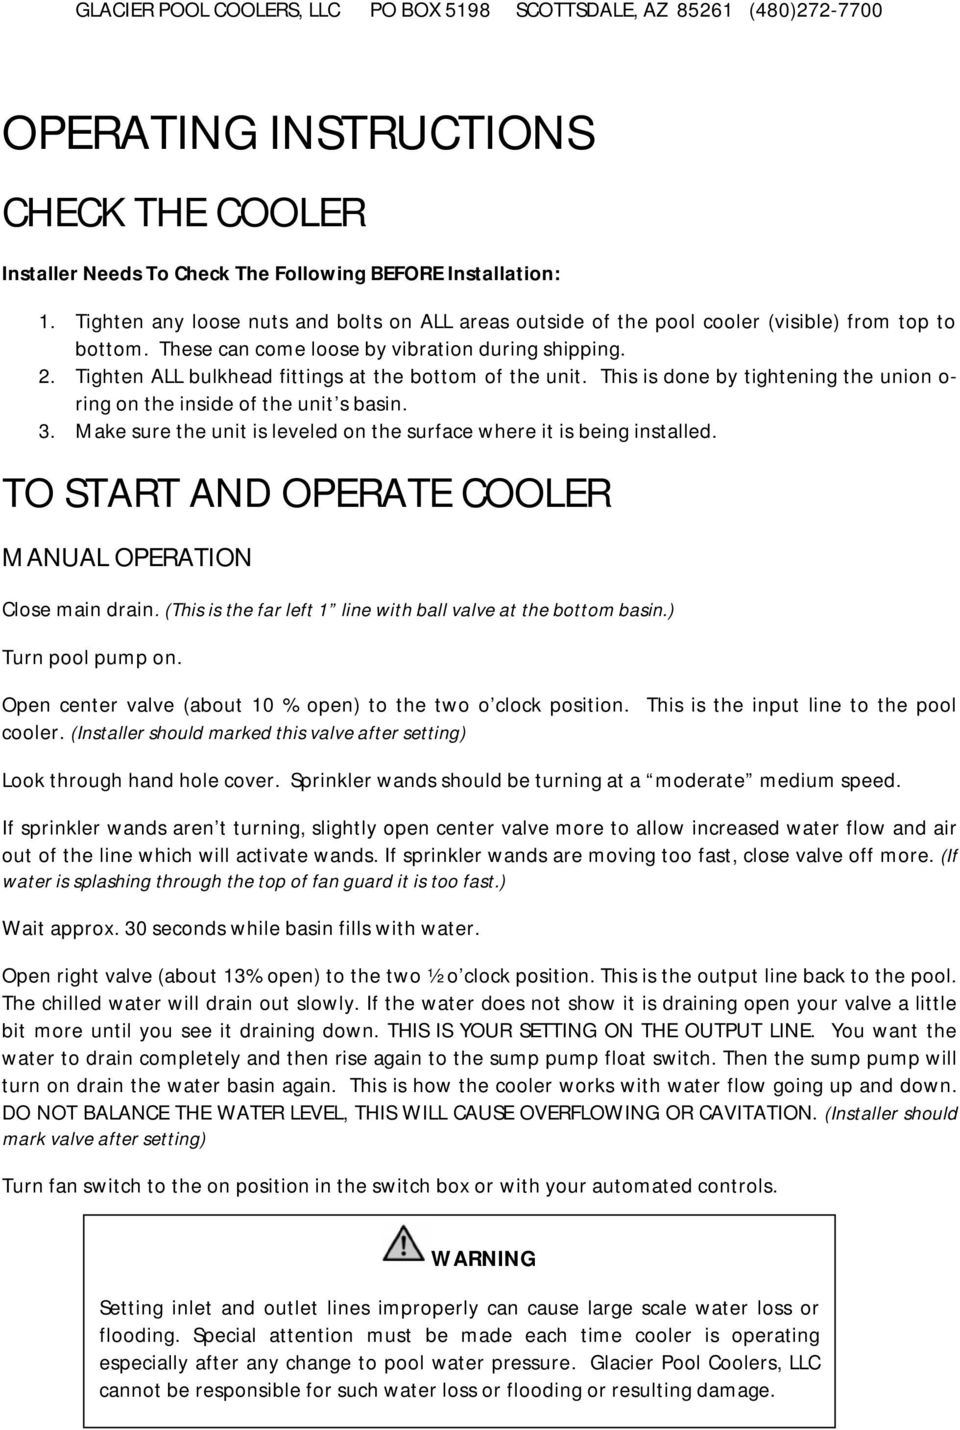 Glacier Pool Coolers Llc Operator Instructions Installation And